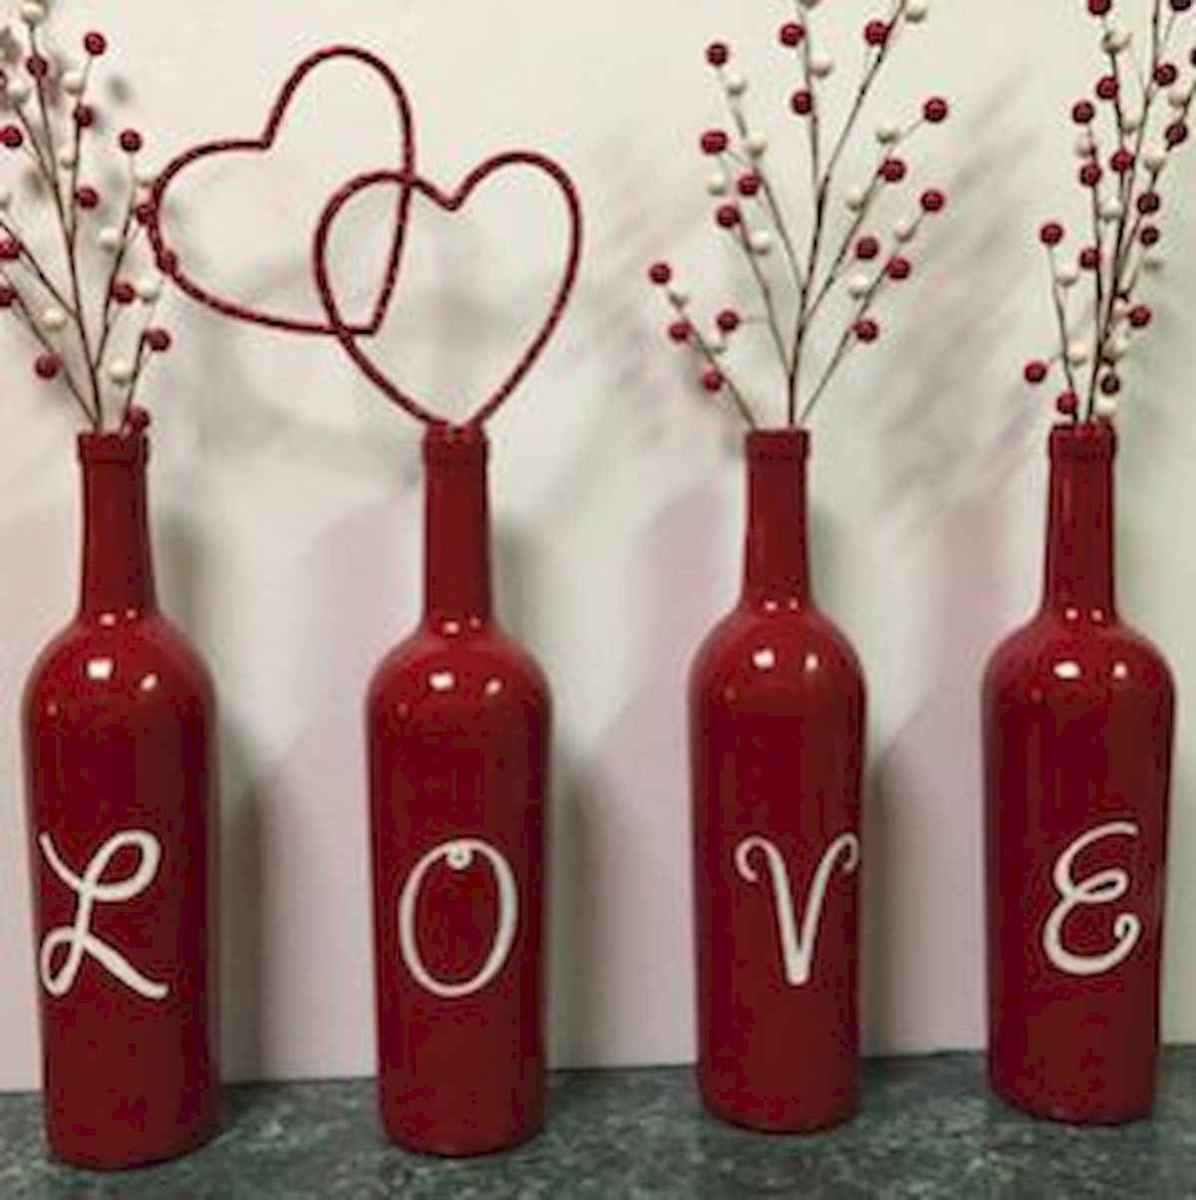 110 easy diy valentines decorations ideas and remodel (77)